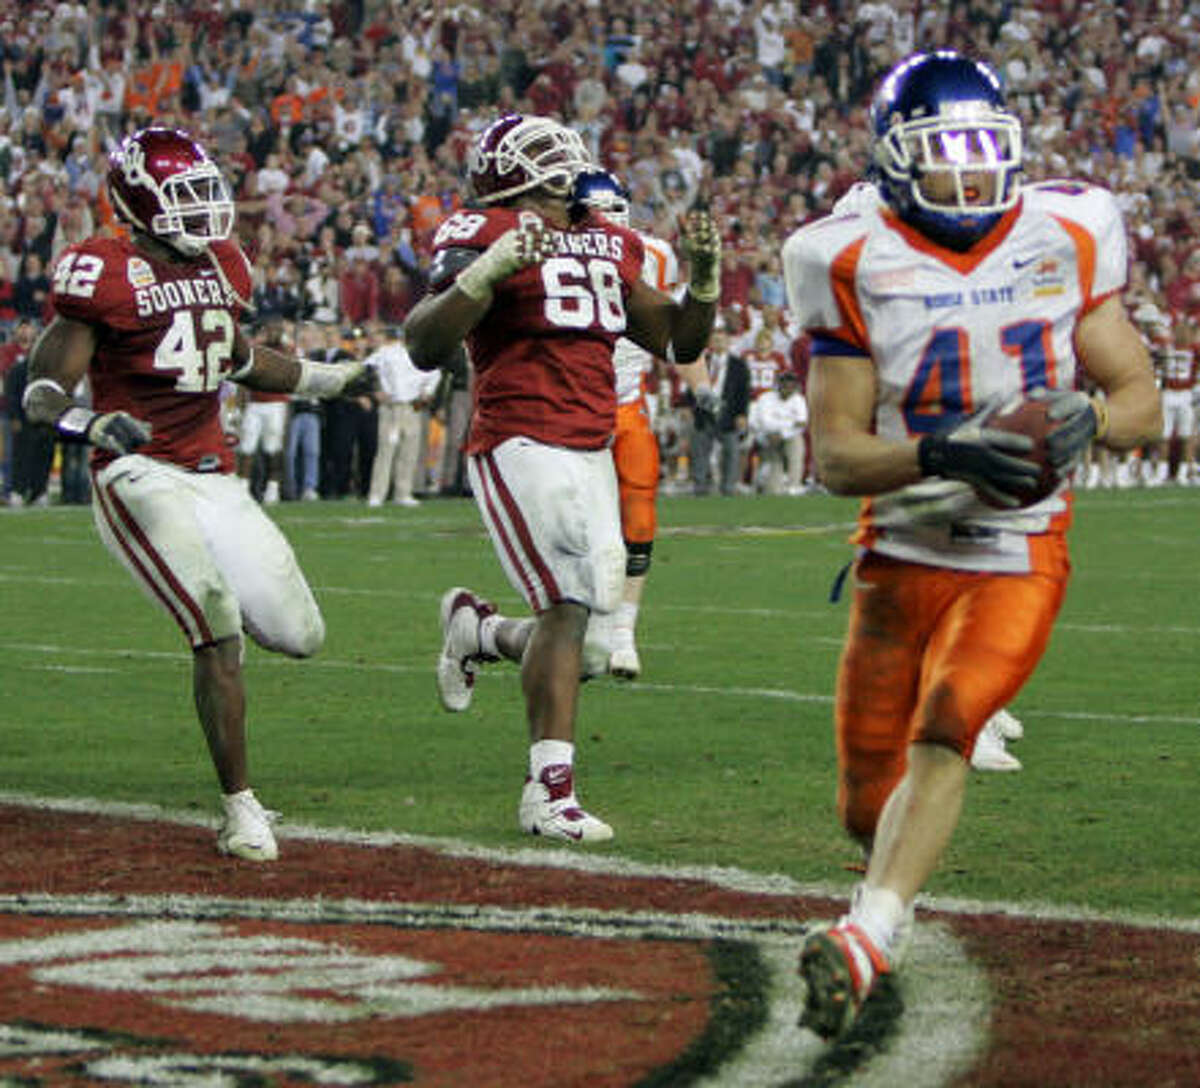 2006: Boise State Ian Johnson's game-winning two-point conversion finished off one of the best games in the brief history of the BCS as the Broncos beat Oklahoma 43-42 in double-overtime. Boise State has been a mainstay in the top 25 ever since.